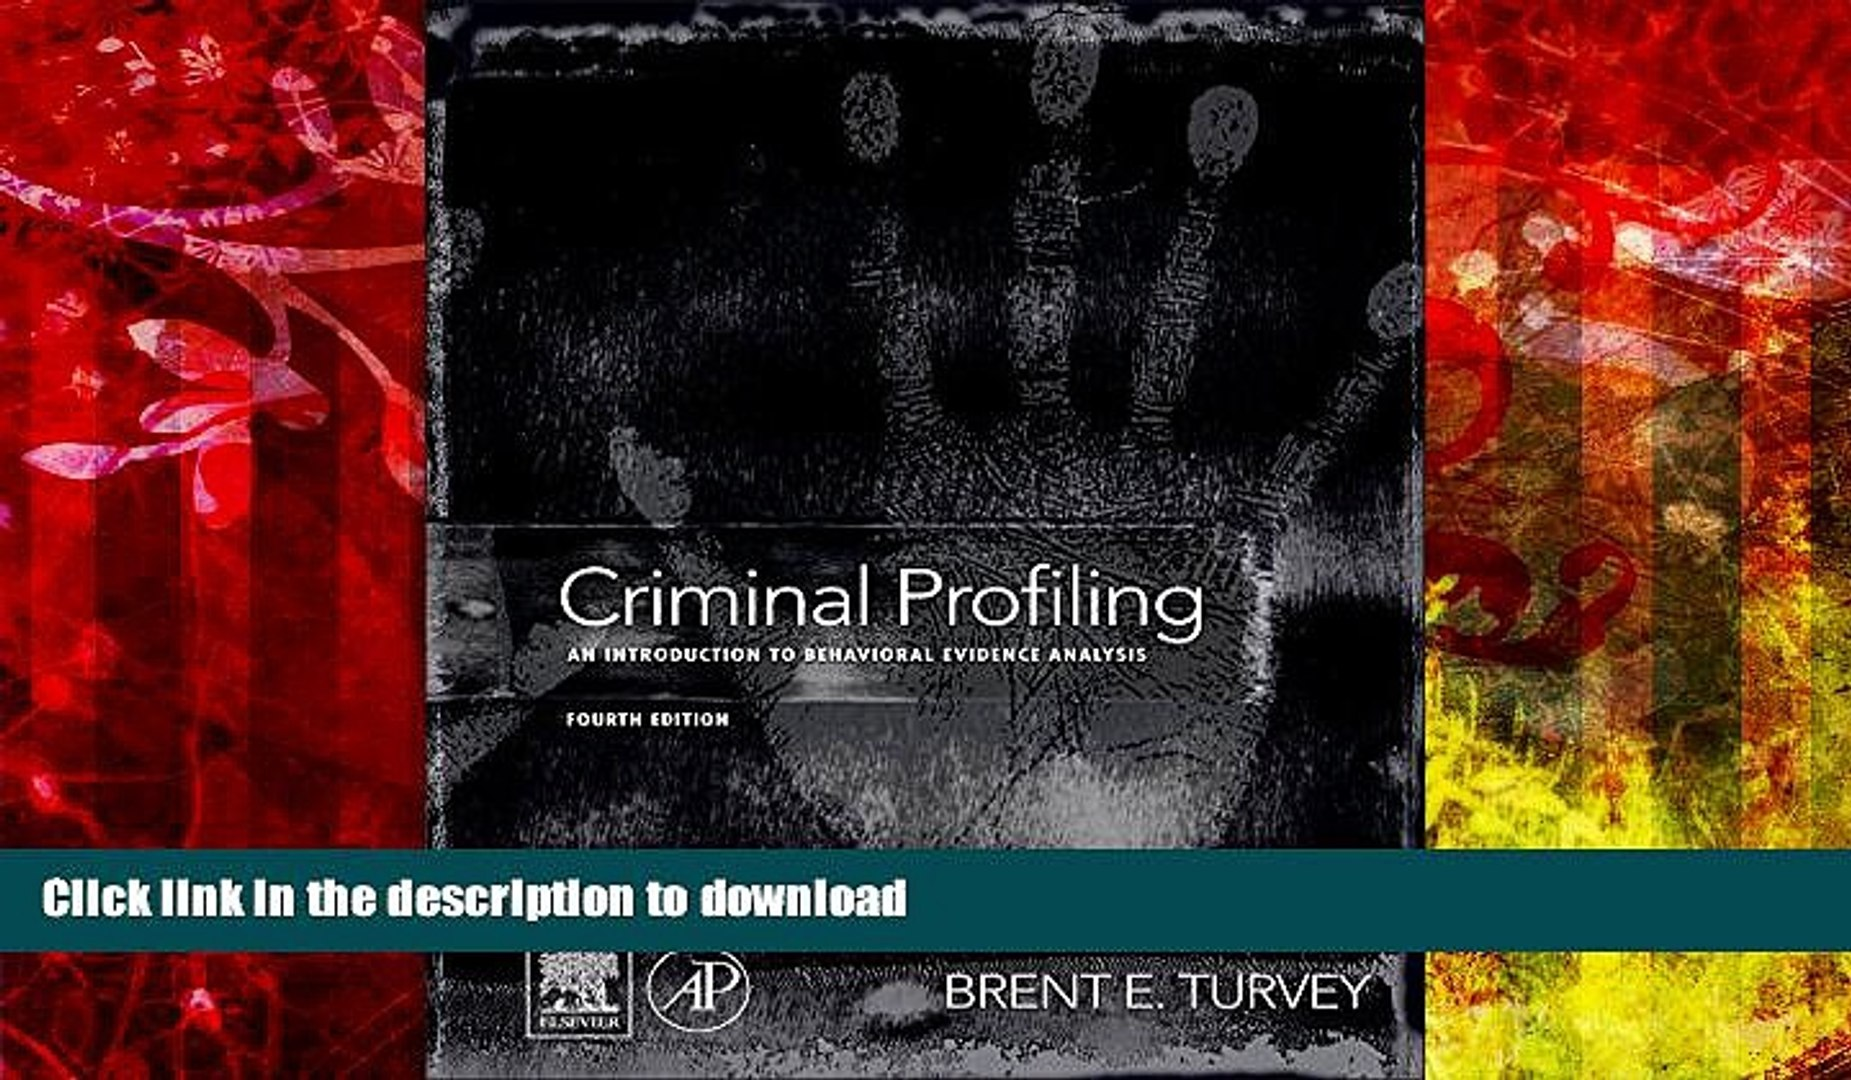 PDF [FREE] DOWNLOAD Criminal Profiling, Fourth Edition: An